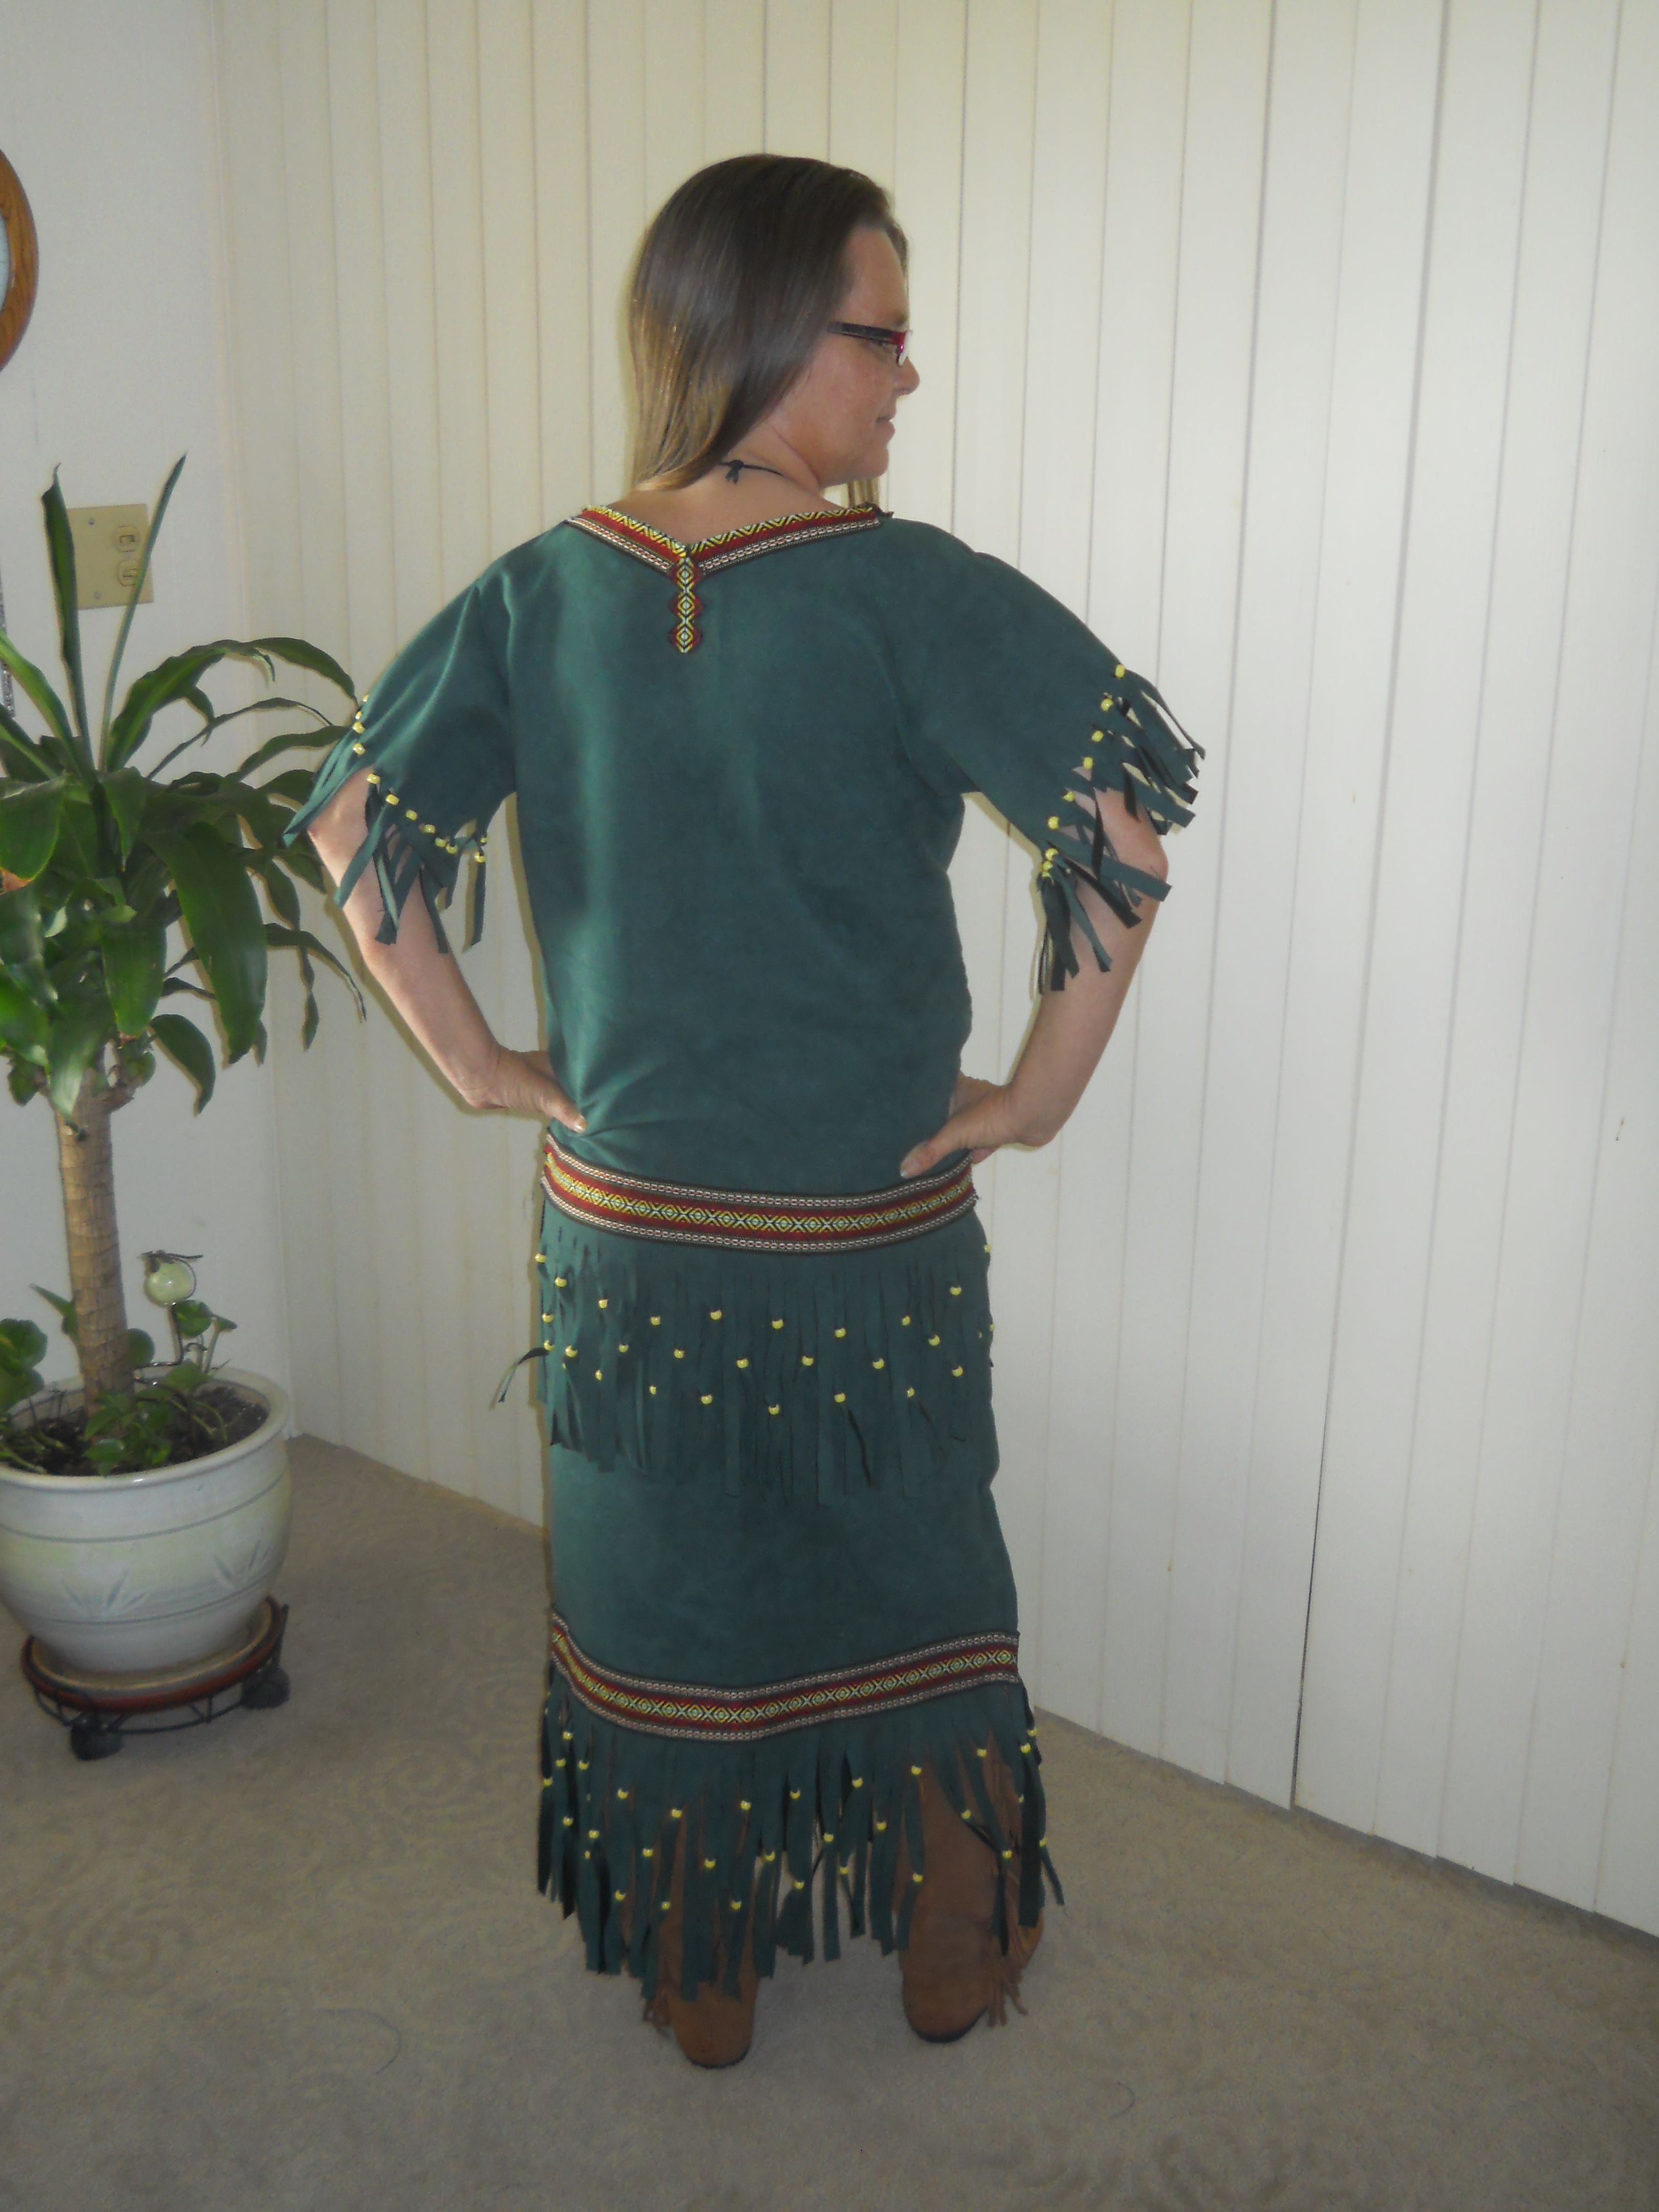 This is a 2 piece set that includes a drawstring style skirt with matching top that has a low waist line and fringed at the sleeve around bottom of top and bottom of skirt and adorned with beads...can be made out of buckskin (shown here in a faux suede)